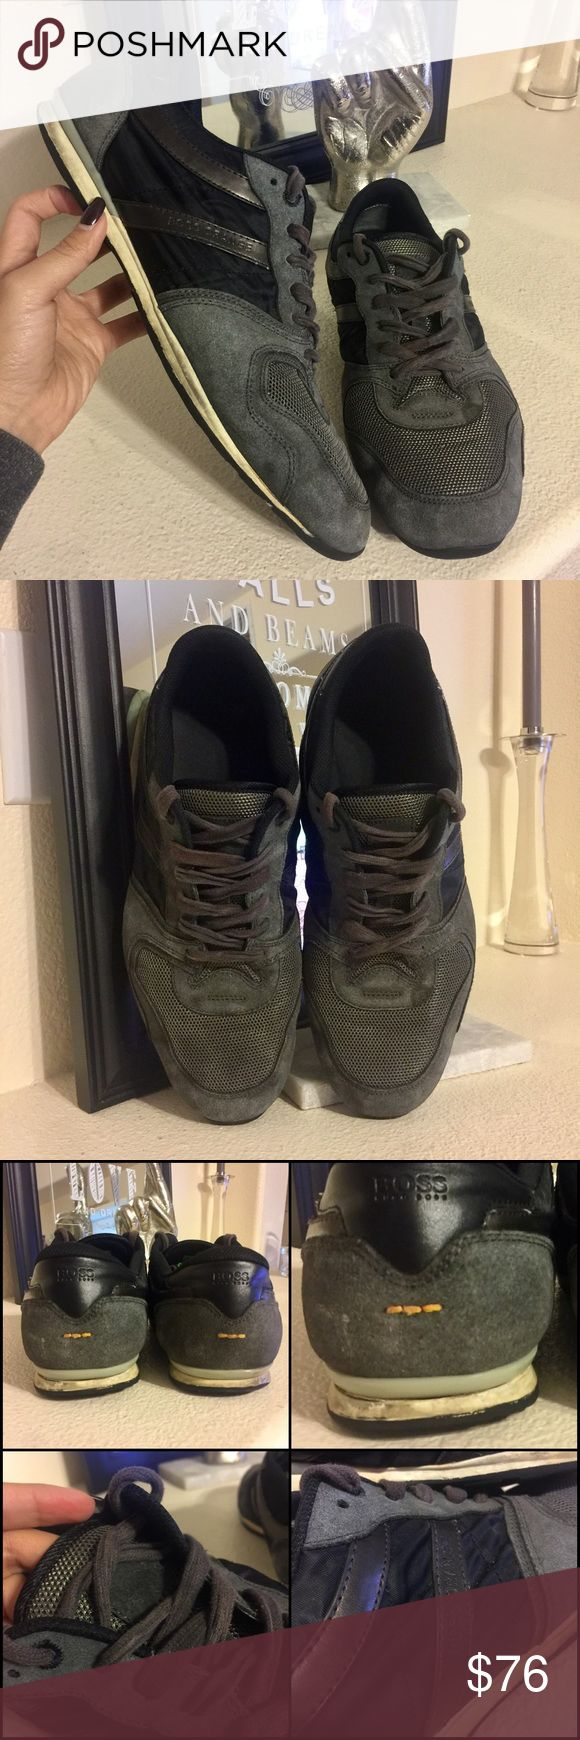 Hugo Boss Gray & Black Suede Leather Sneakers Gray & black sneakers or casual shoes for men from Boss Orange by Hugo Boss. Mix of Suede leather, mesh nylon, and laminated leather. Worn but there's still a lot of life left! ❣️MAKE AN OFFER Hugo Boss Shoes